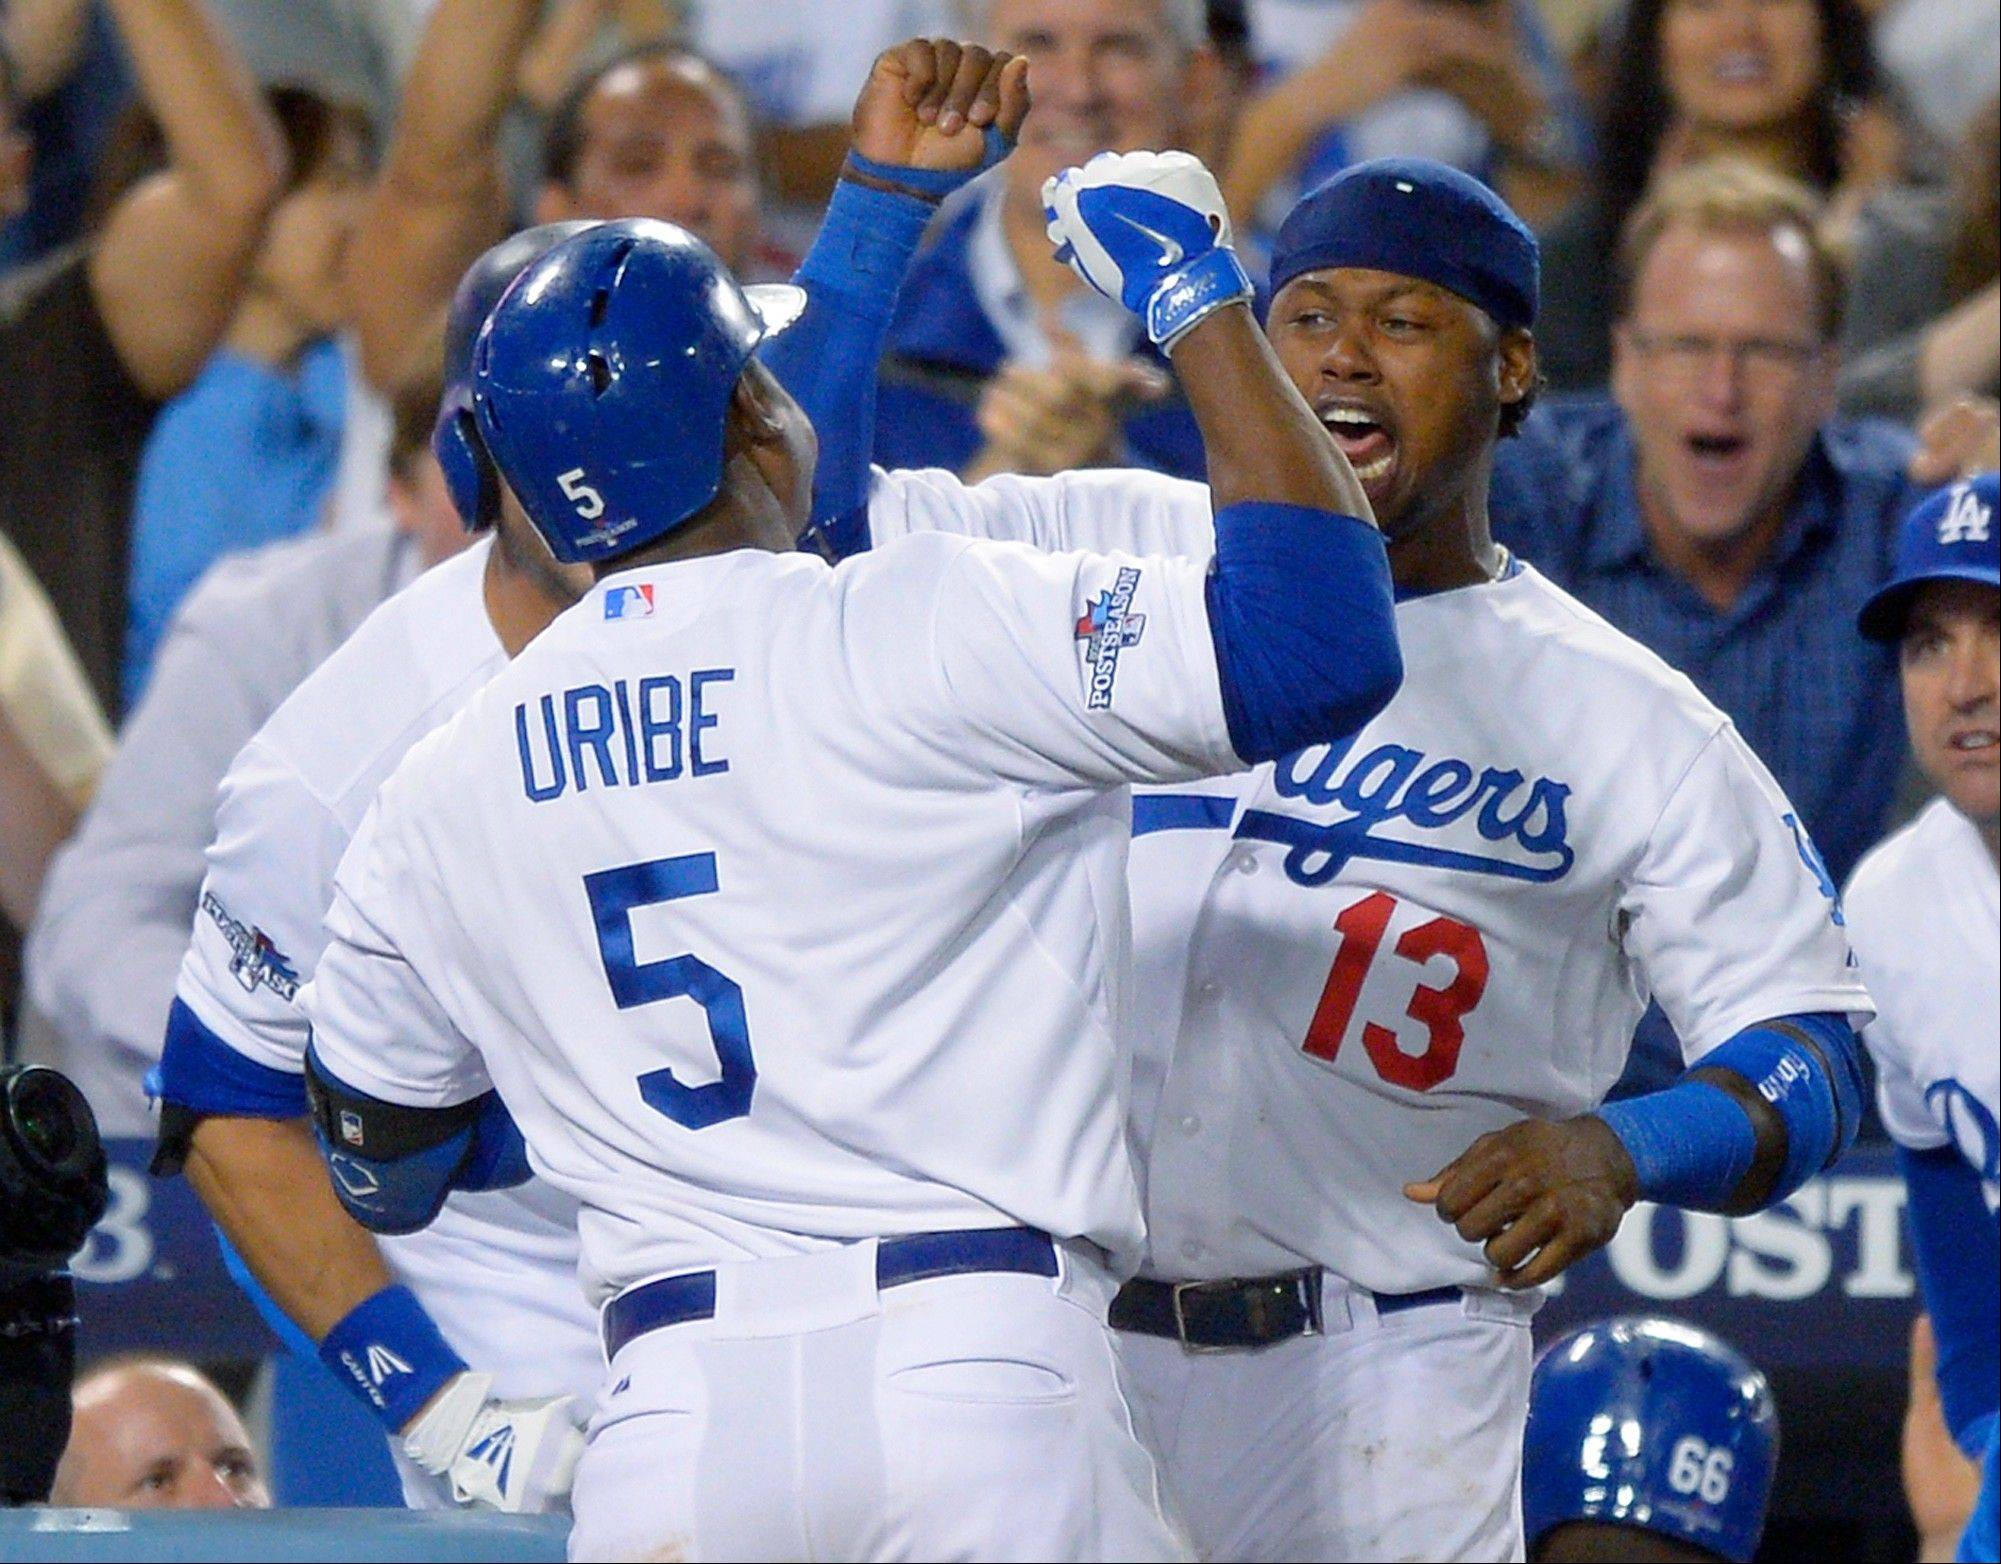 The Dodgers' Juan Uribe (5) celebrates with Hanley Ramirez (13) after Uribe hit a two-run home run in the eighth inning Monday in Game 4 against the Braves. The Dodgers won 4-3 at home to take the series.